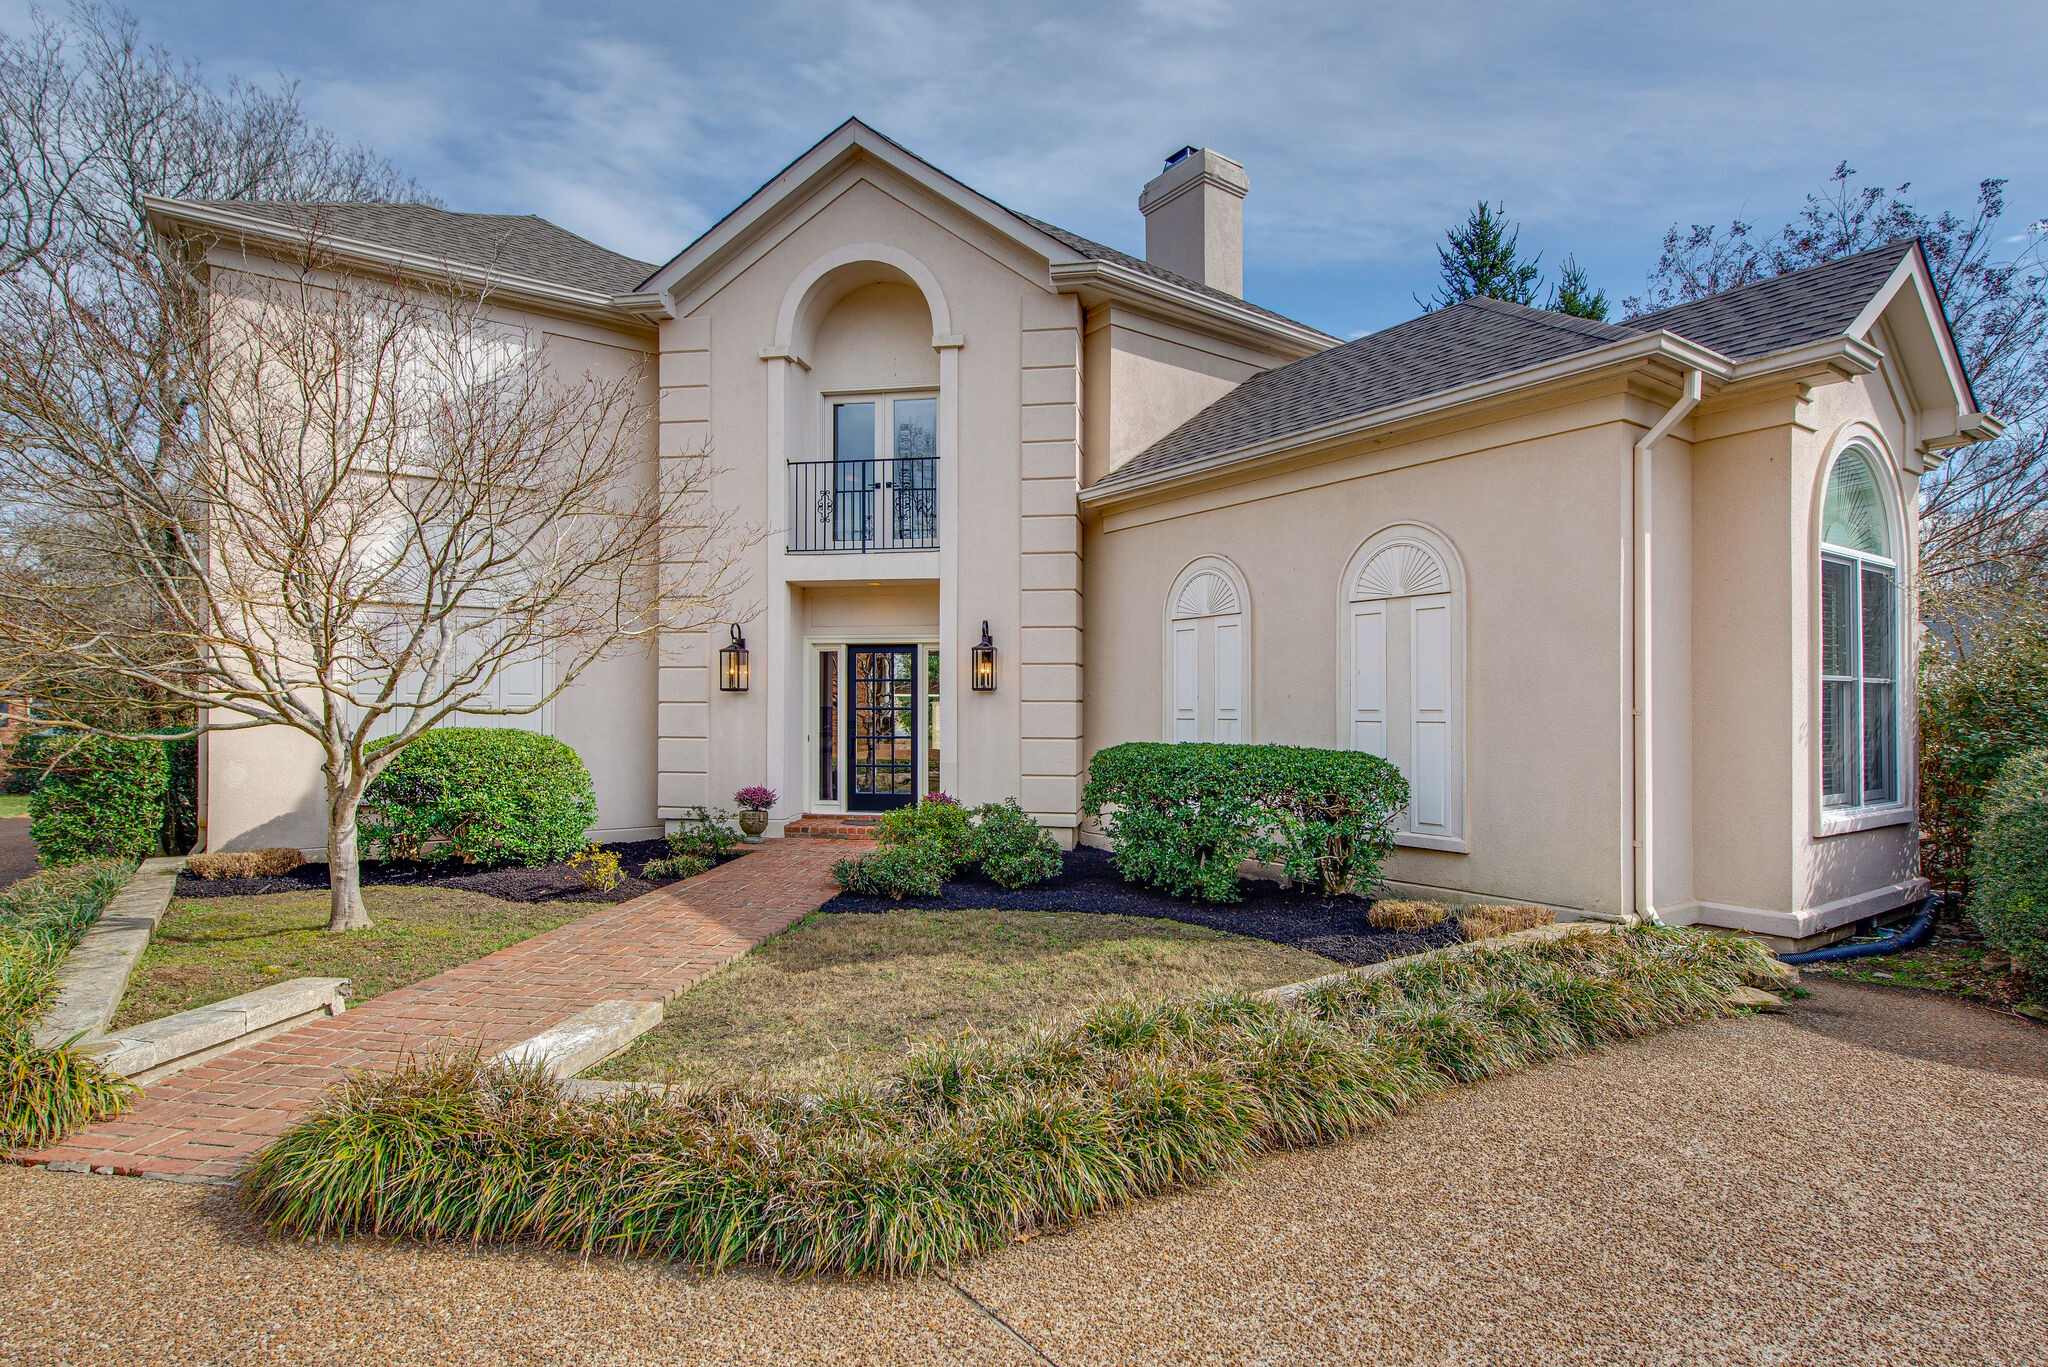 316 Allen Pl Property Photo - Nashville, TN real estate listing